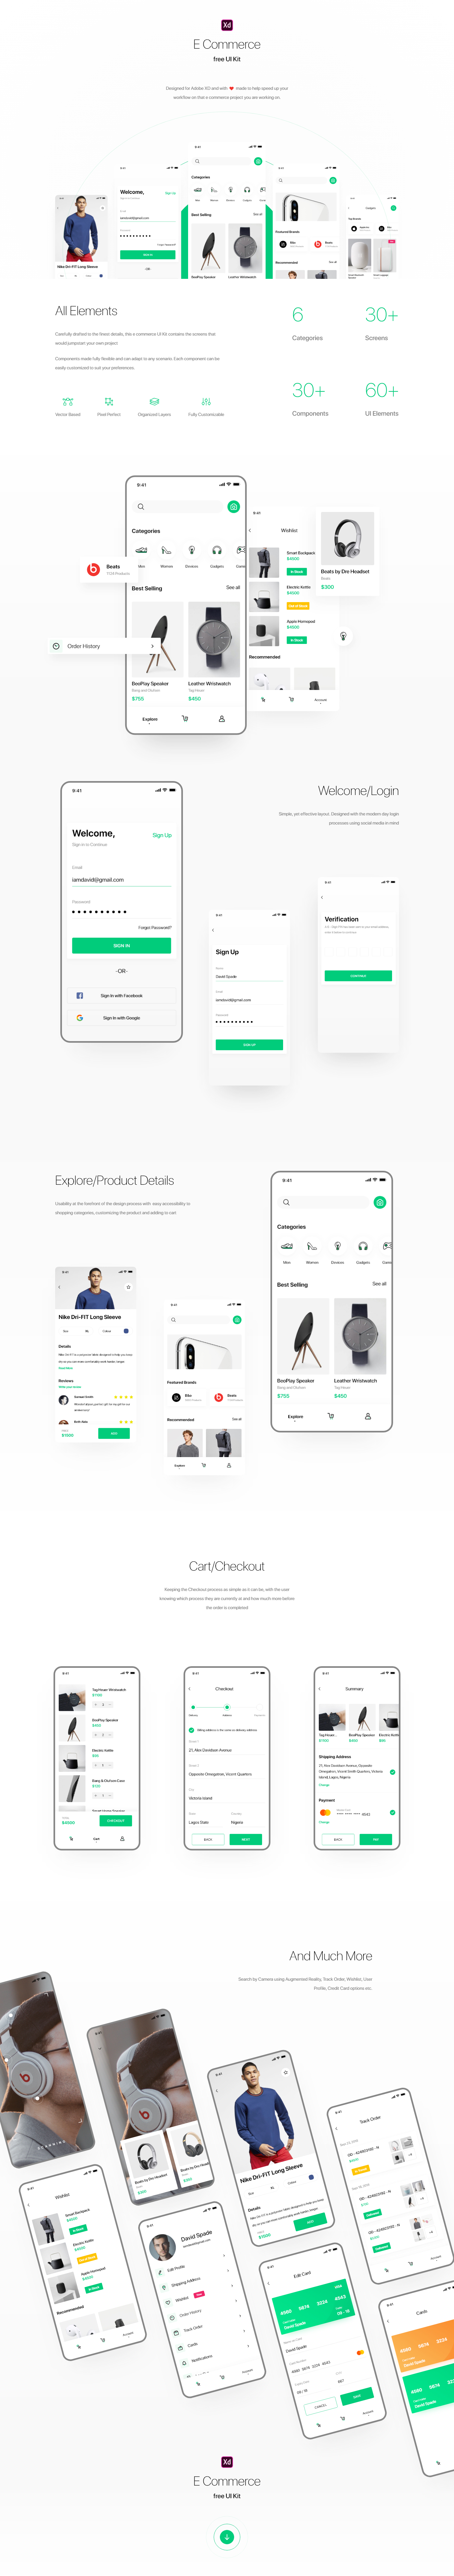 Shopping UI Kit for Adobe XD - Minimal and clean shopping app design, 30+ screens for you to get started. Each element is fully vector based, with pixel-perfect construction, well organized in layers, and made fully flexible so that it can be adapted to any projects.